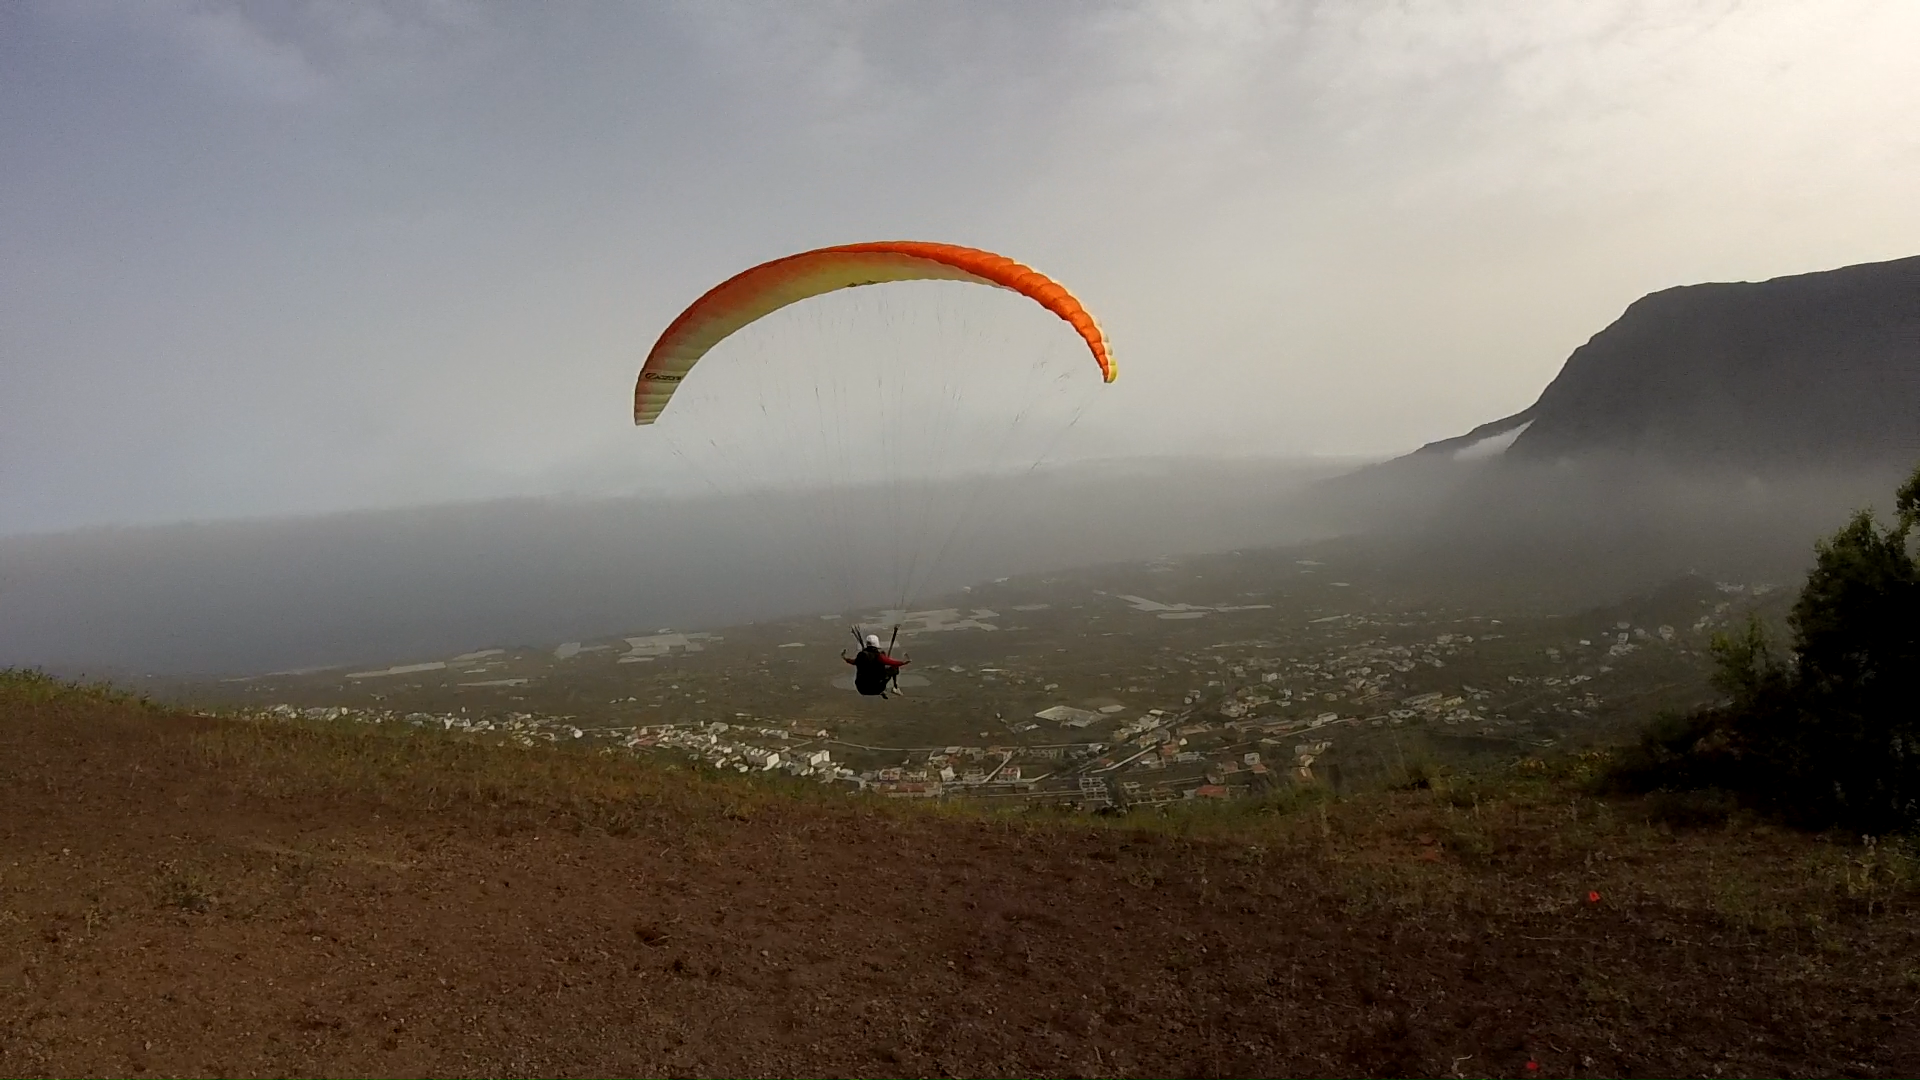 FLY PARAGLIDING TENERIFE, PARAGLIDING TENERIFE, PARGLIDING SCHOOL. LEARN TO FLY TENERIFE, HOLIDAYS TENERIFE, FLY TENERIFE, Fly paragliding tenerife. Paragliding School tenerife and el hierro. Paragliding holidays tenerife and el hierro